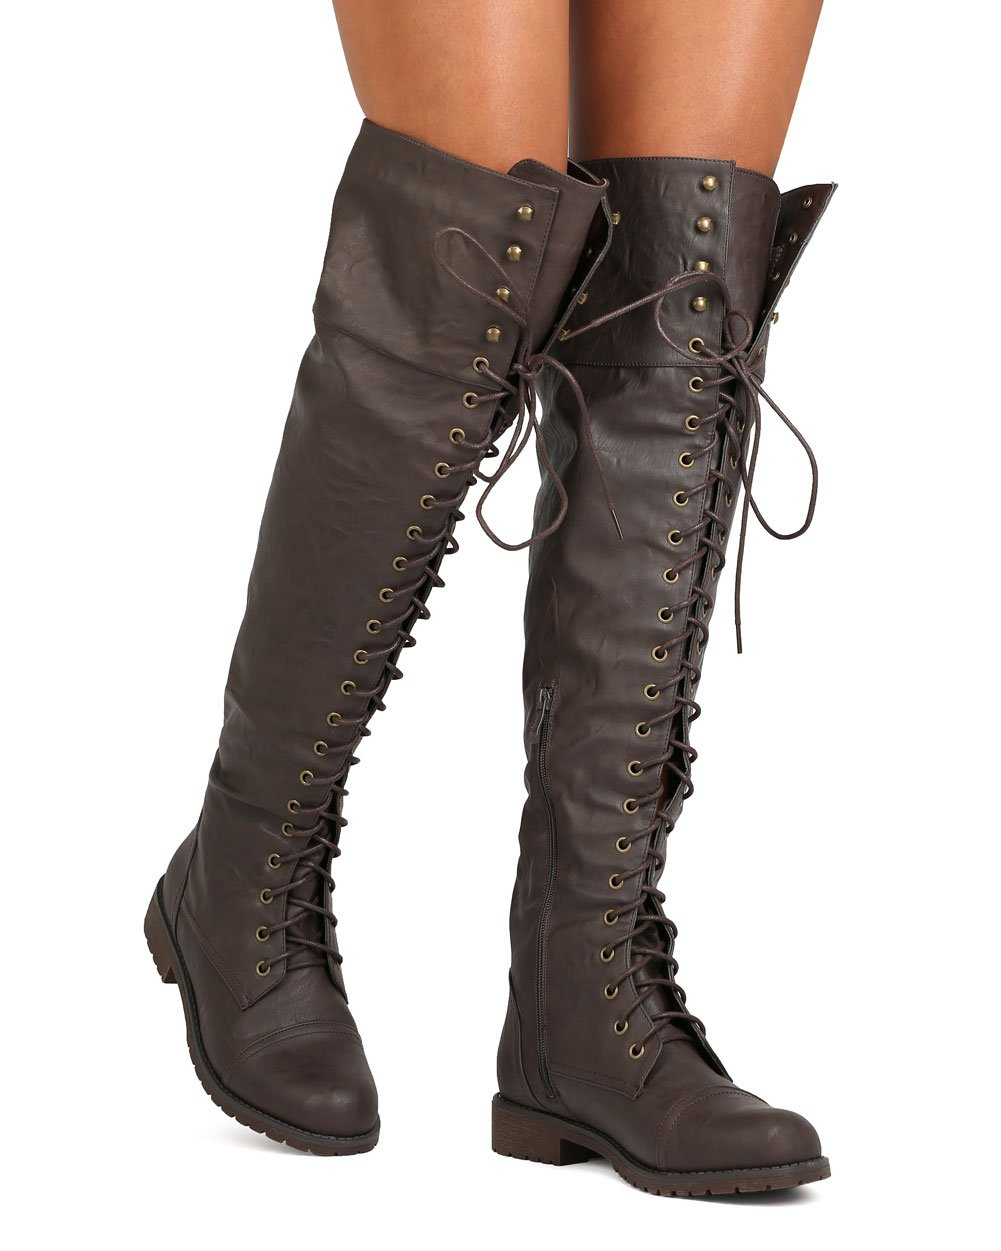 Women Leatherette Over The Knee Lace up Combat Boot FG08 - Brown (Size: 8.0)